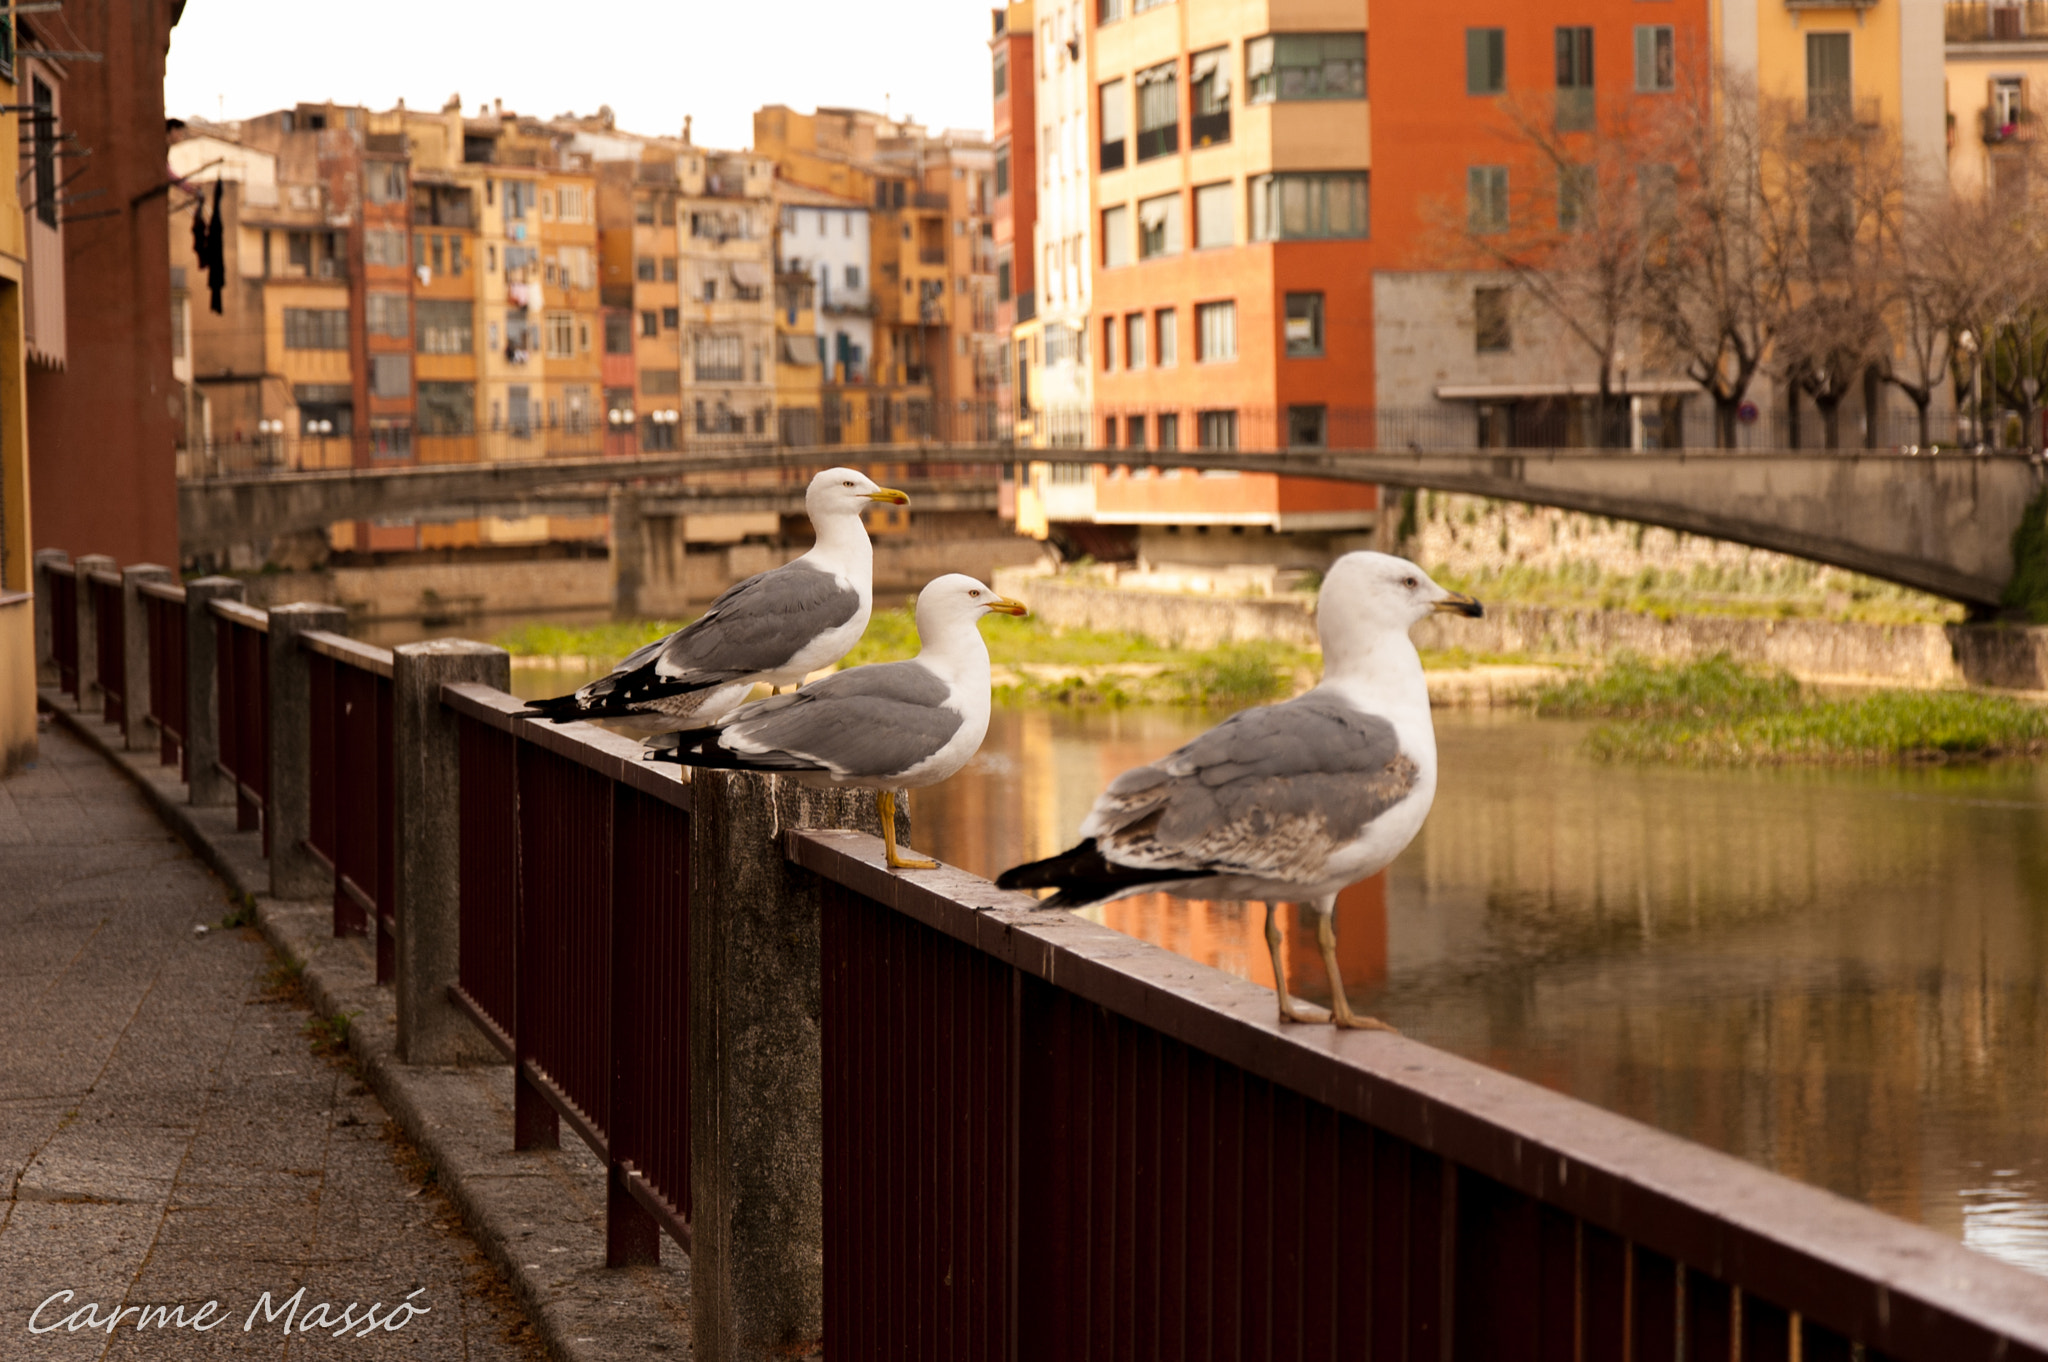 Photograph Untitled by Carme Massó on 500px